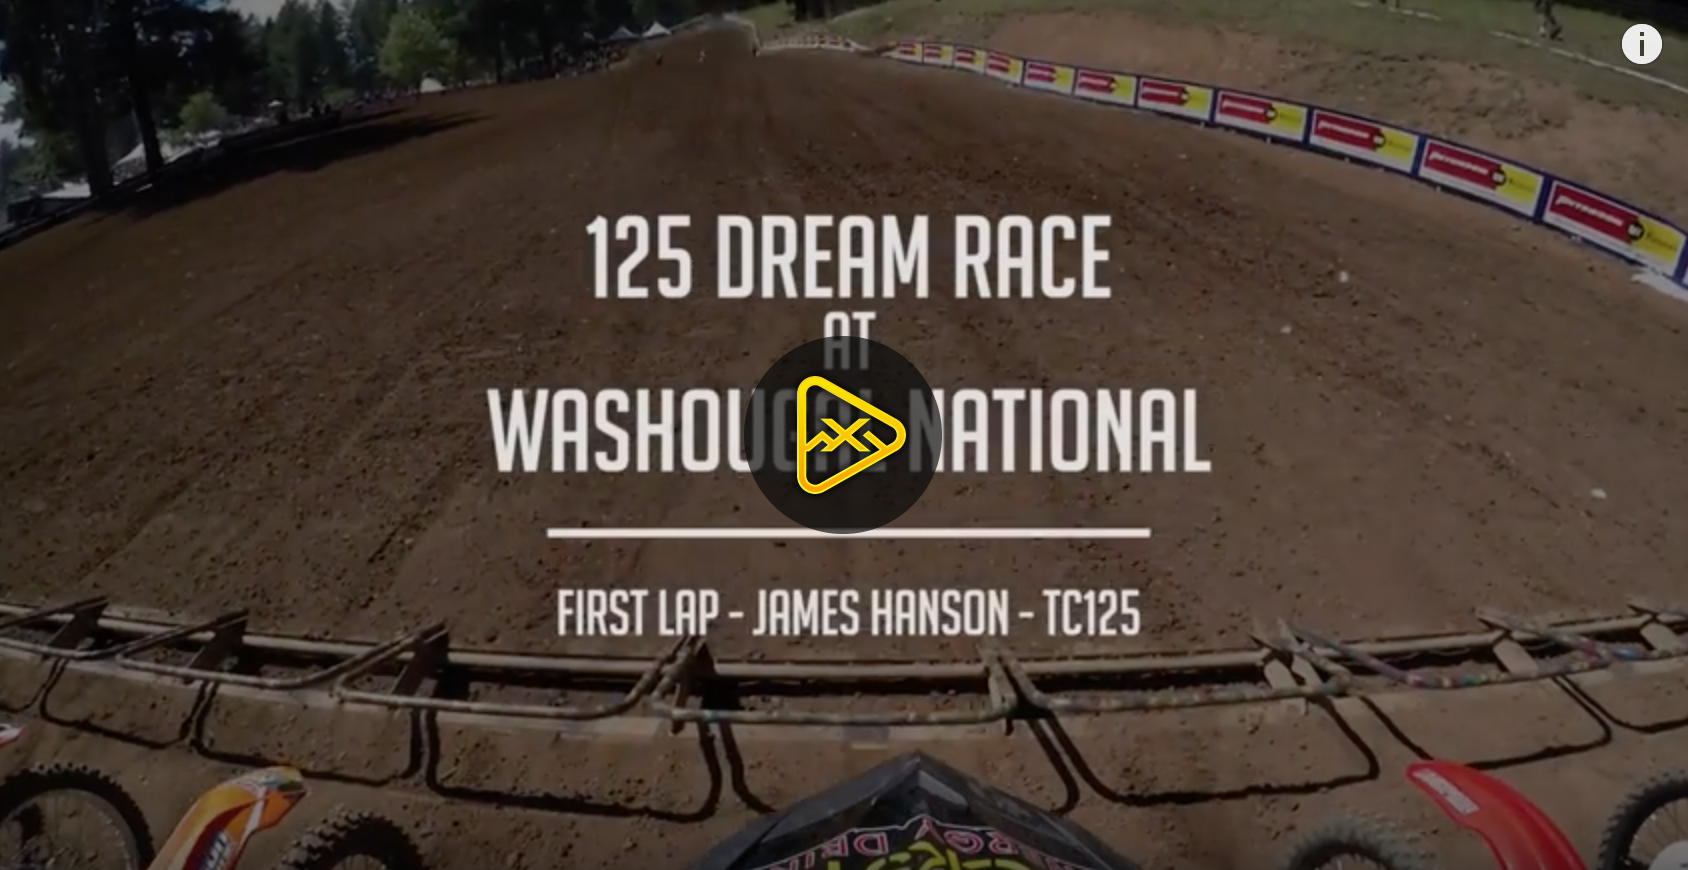 Helmet Cam: 125 Dream Race at Washougal National